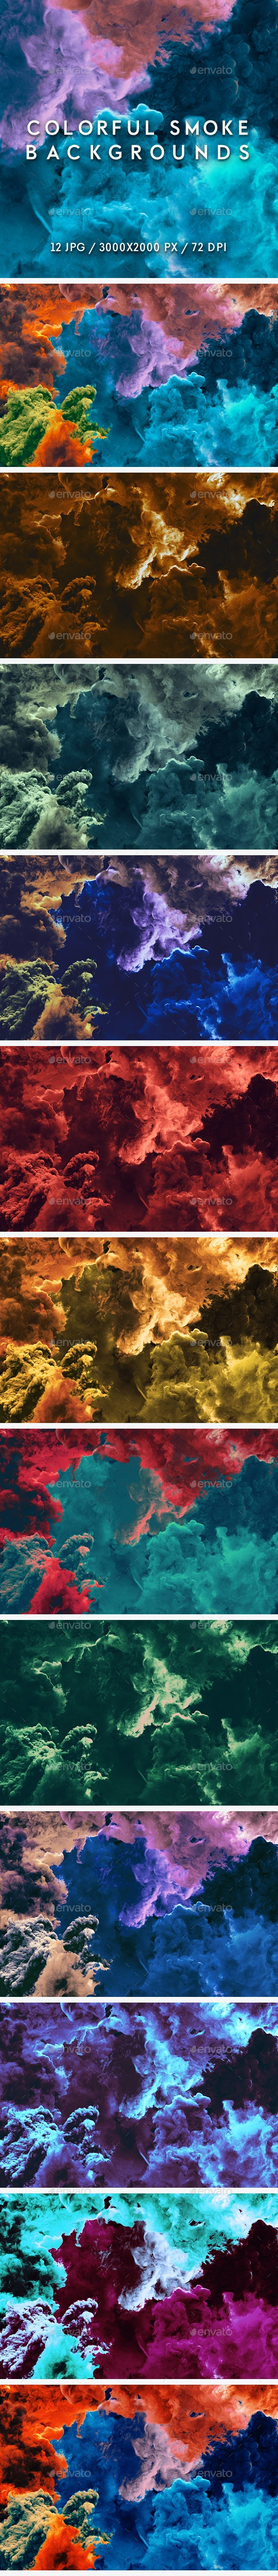 Colorful Smoke Backgrounds - Abstract Backgrounds